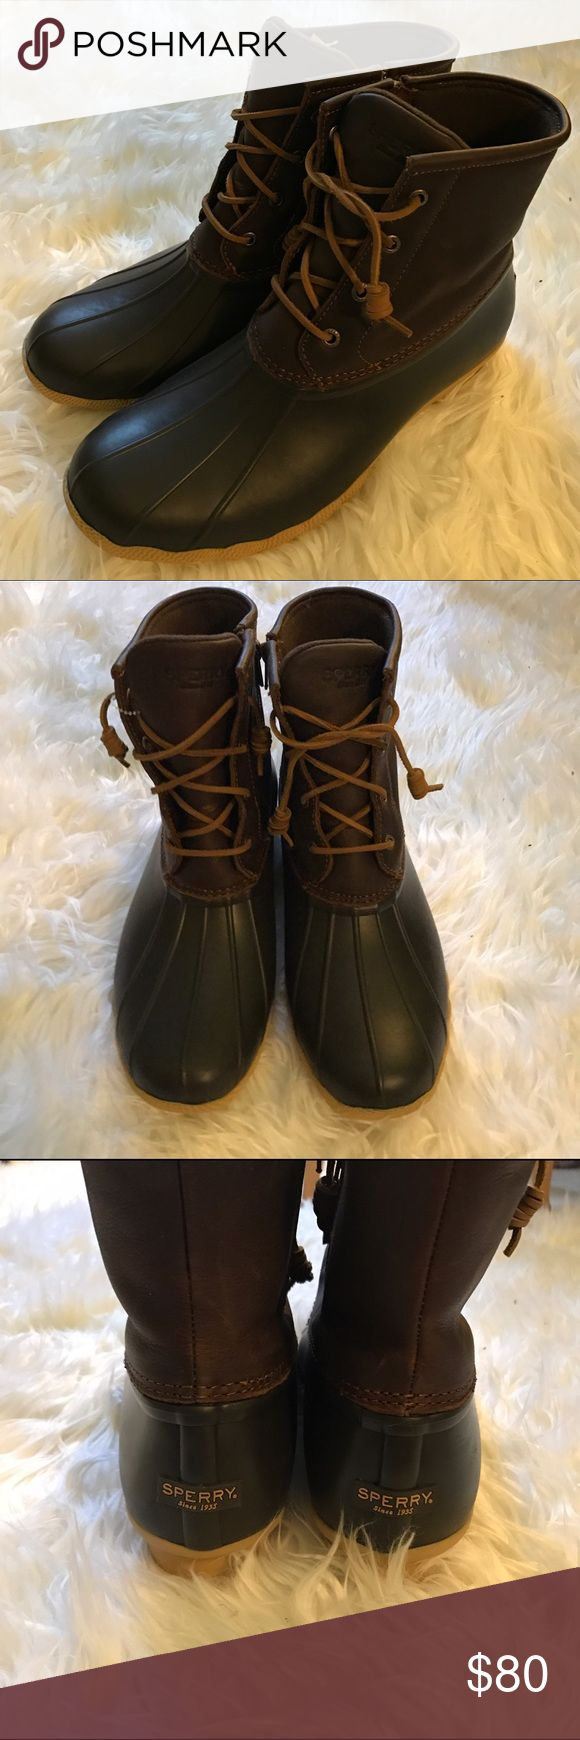 Sperry top sider boots. NWOT. Size 11 Sperry top sider boots. Brand new but without the box. Women's size 11 Sperry Top-Sider Shoes Winter & Rain Boots